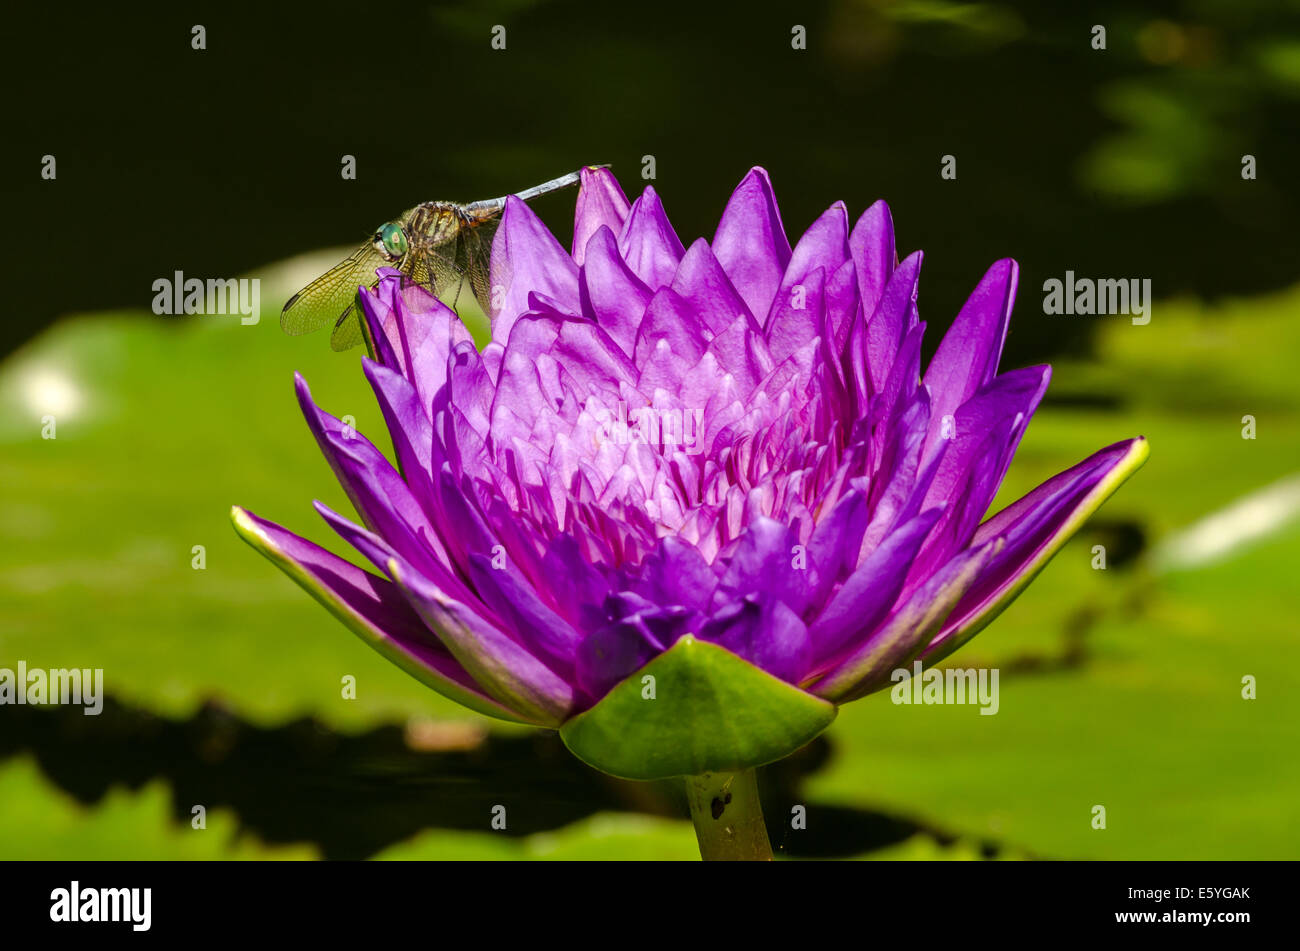 Lily Pad Dragonfly Stock Photos Lily Pad Dragonfly Stock Images